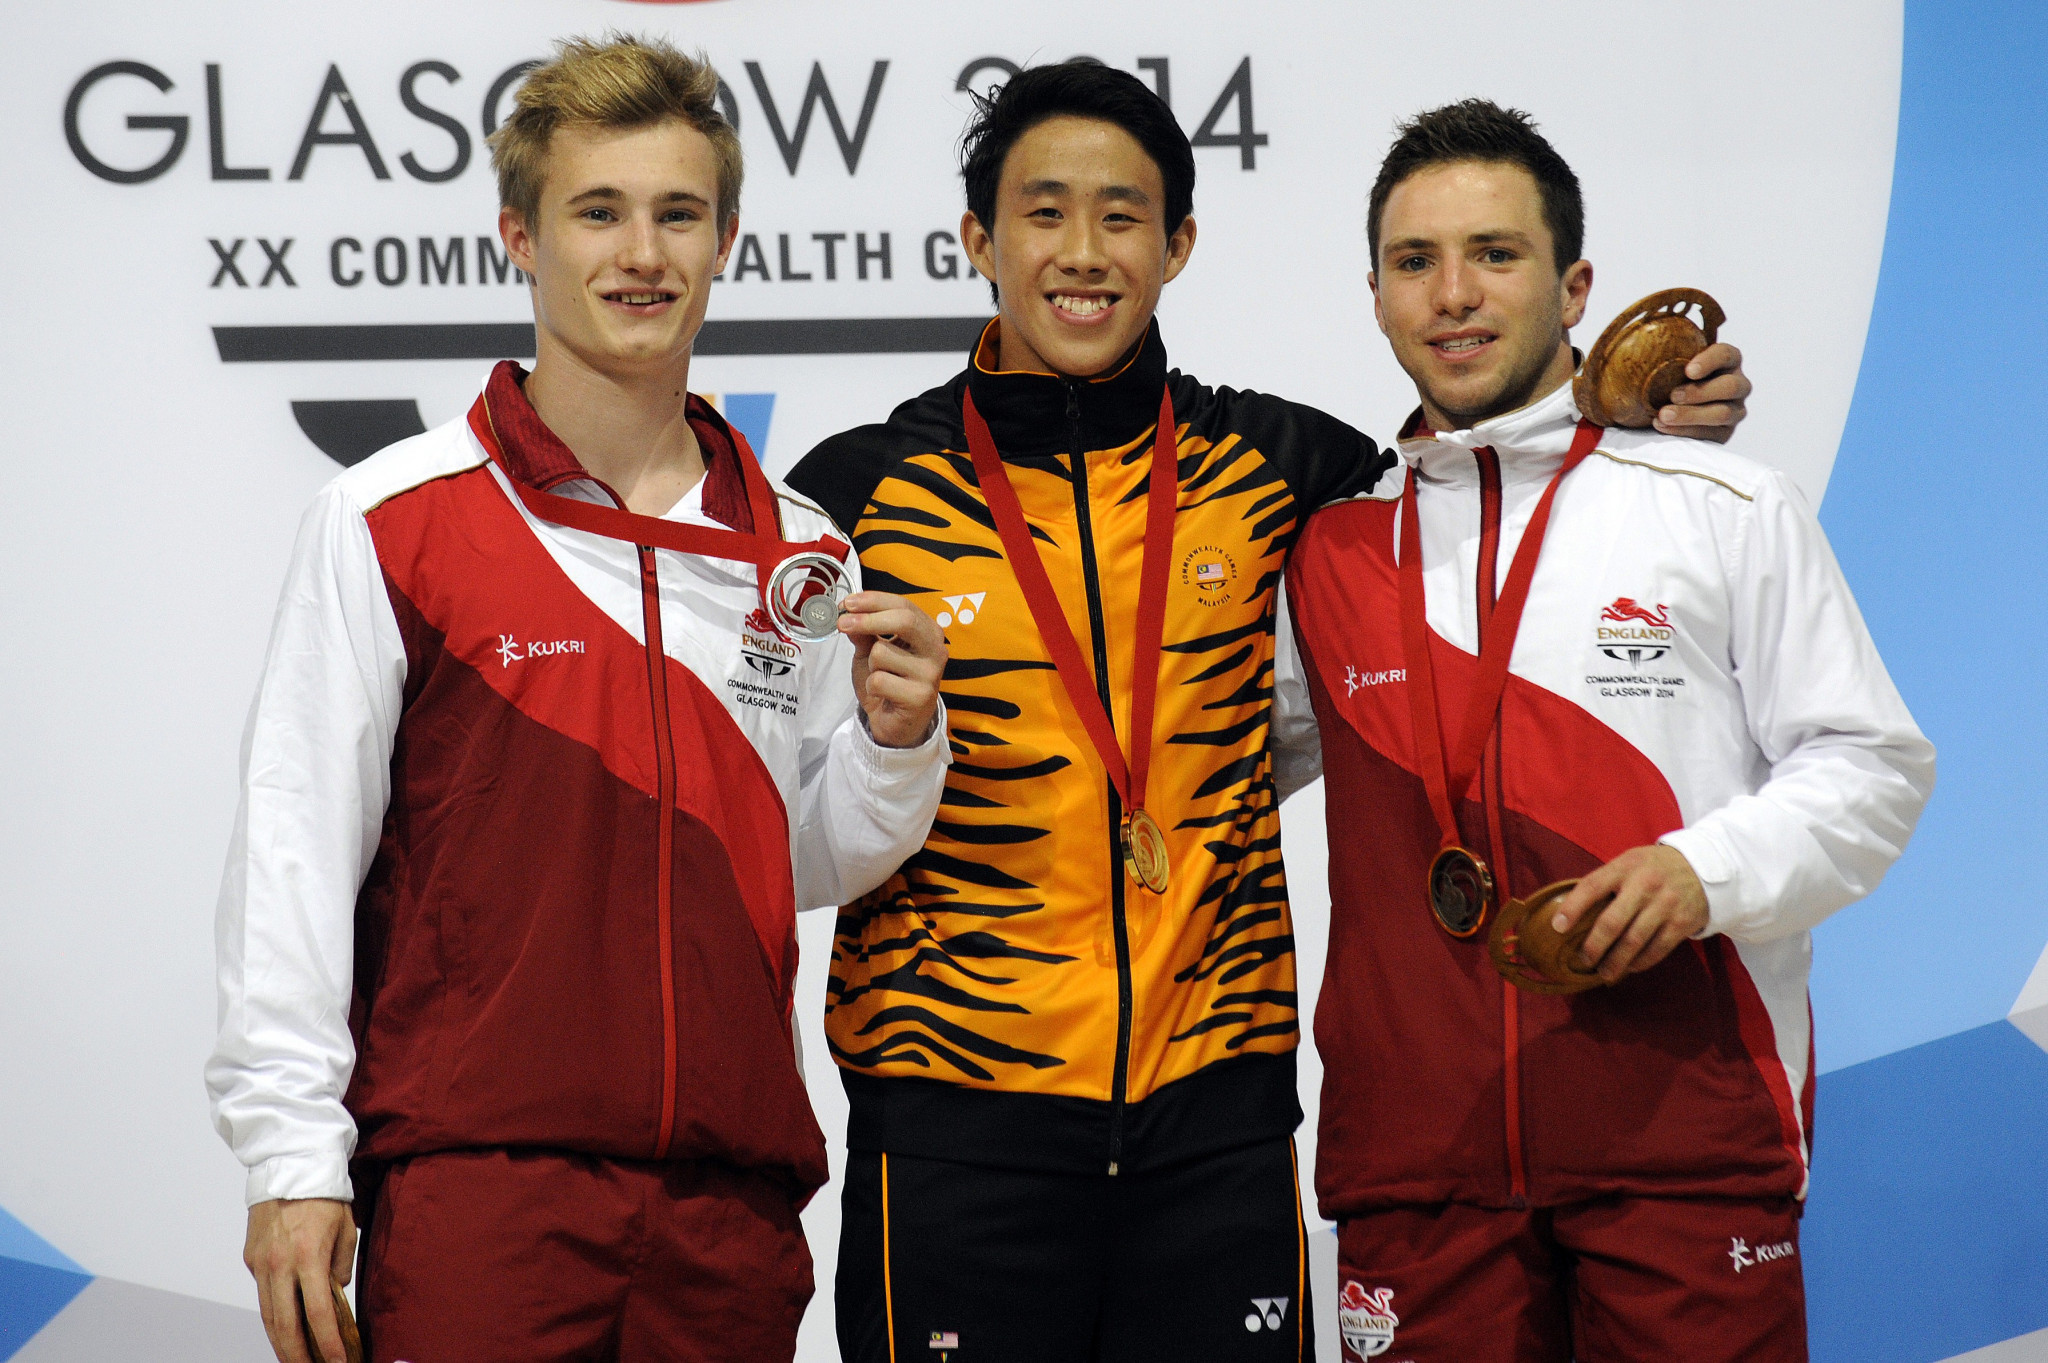 Ooi Tze Liang won gold at the 2014 Glasgow Commonwealth Games ©Getty Images